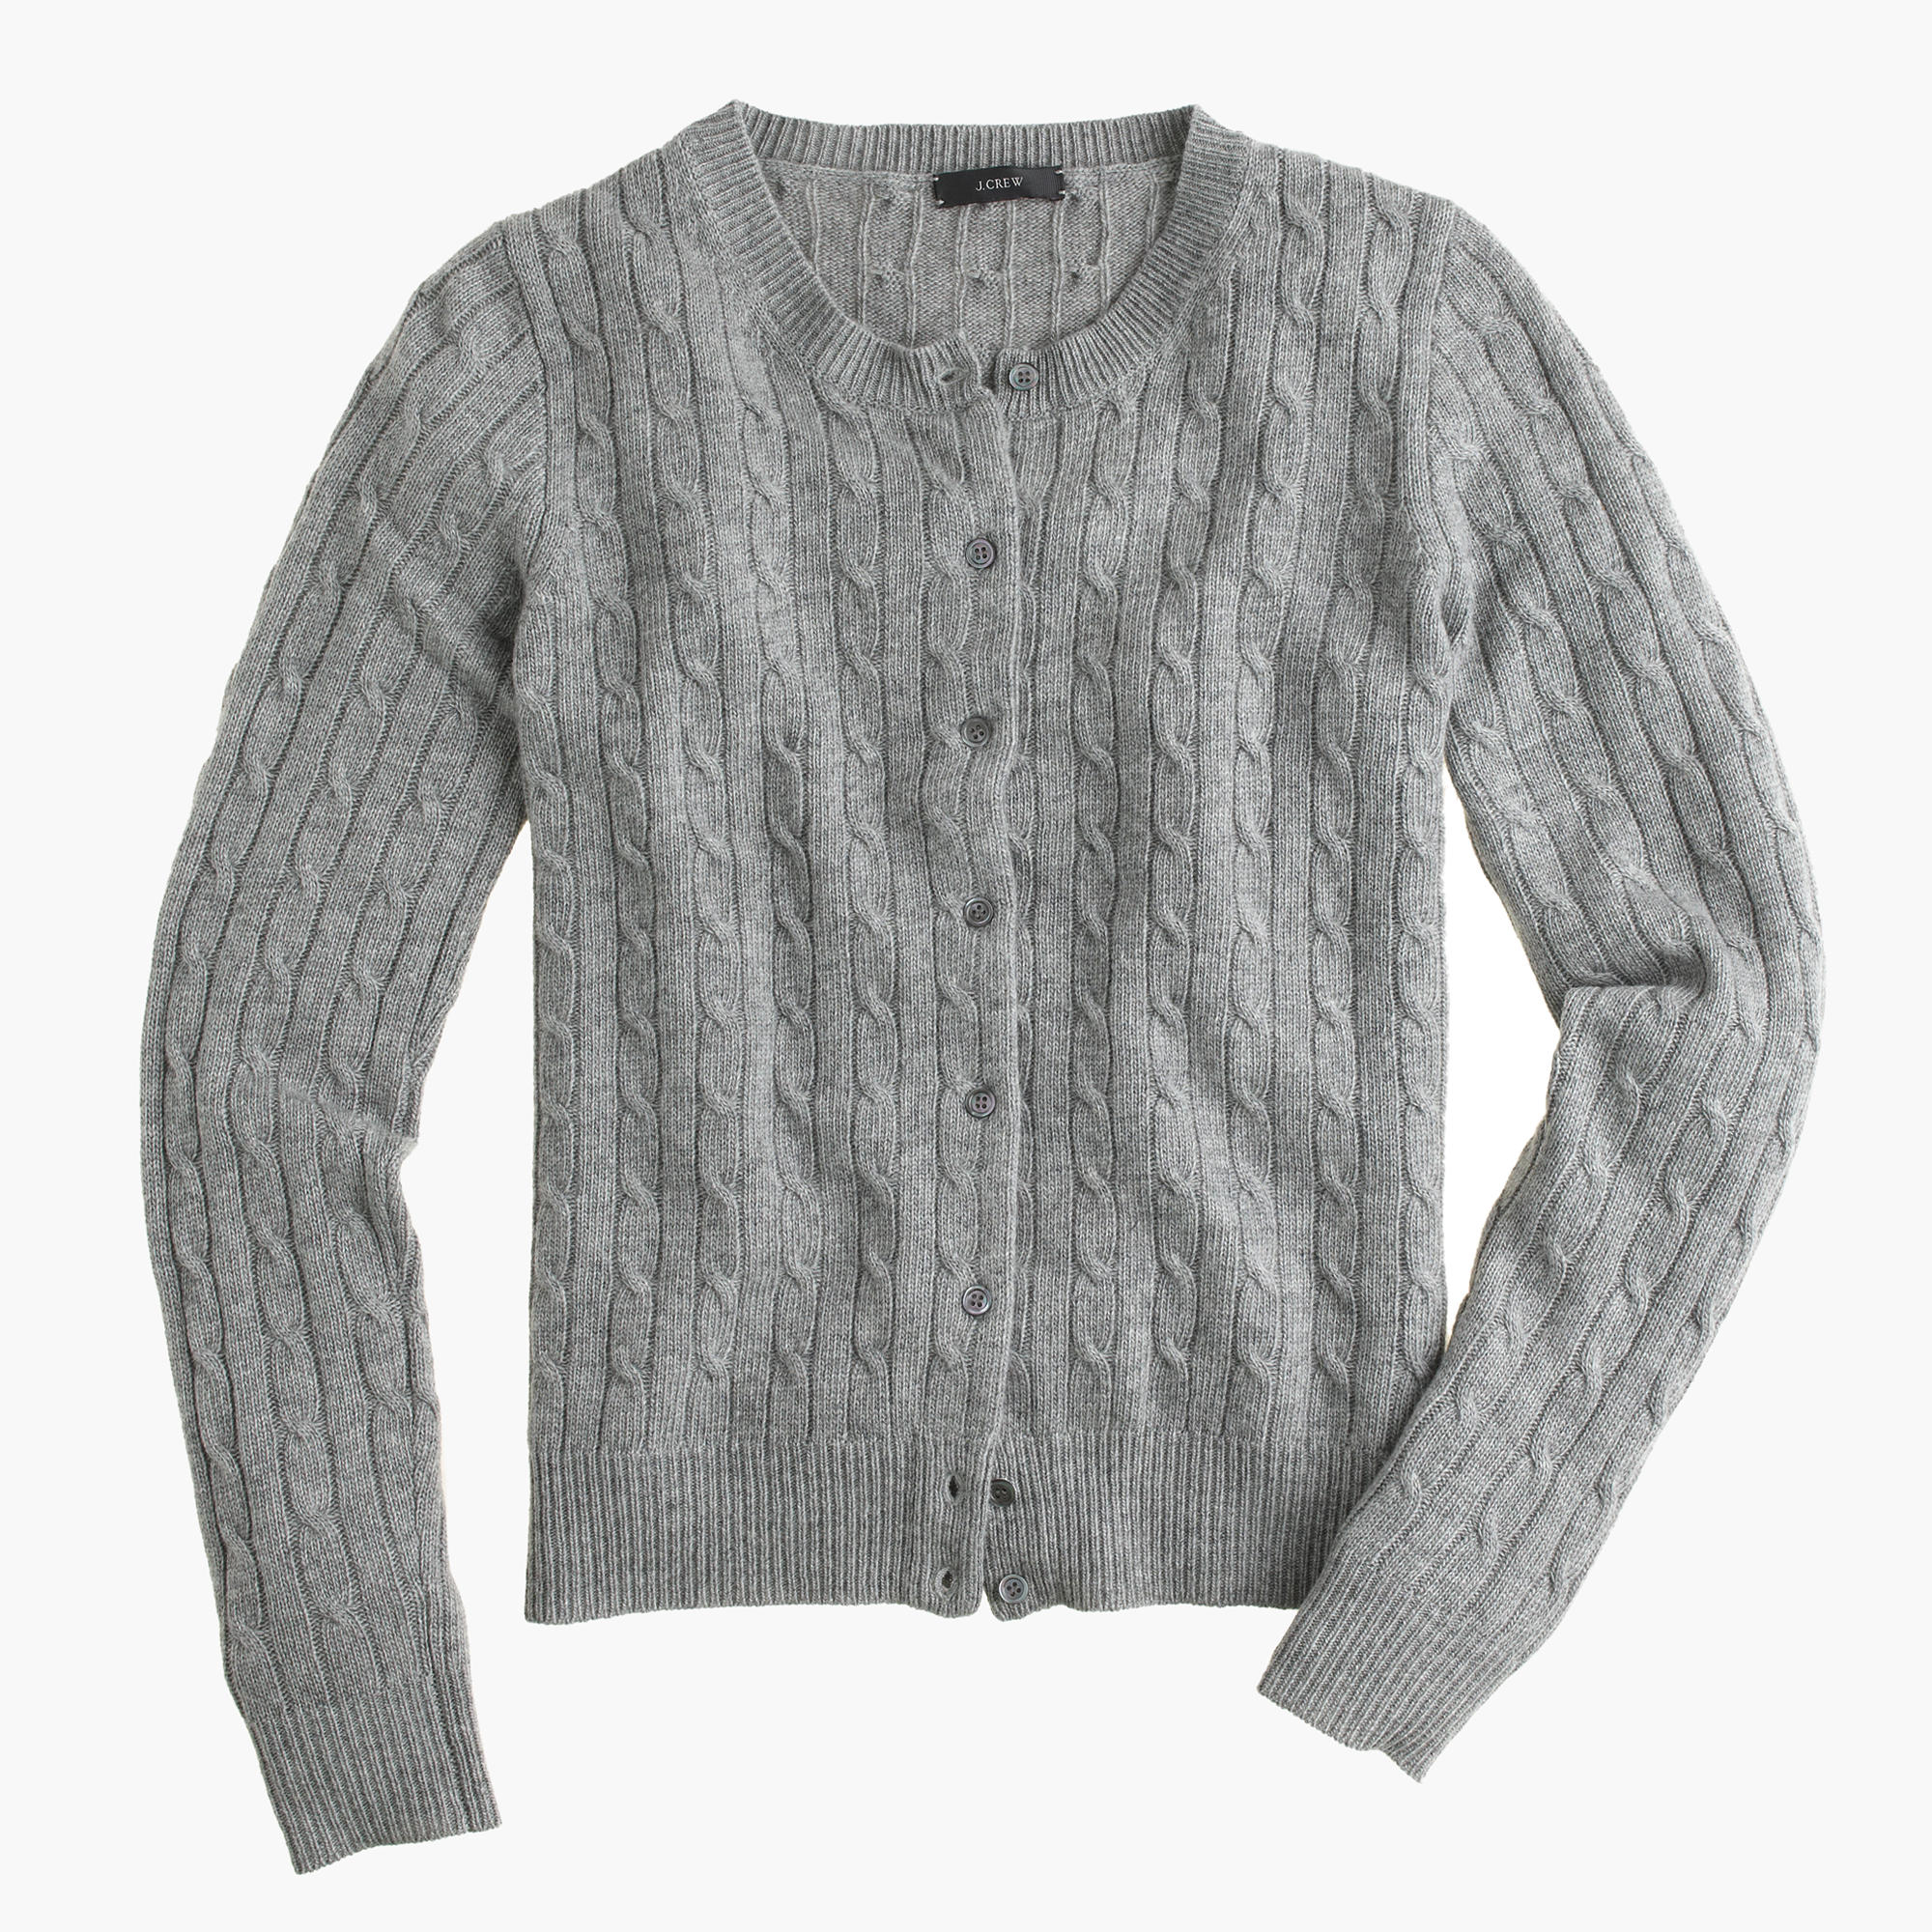 J.crew Cambridge Cable Cardigan Sweater in Gray | Lyst